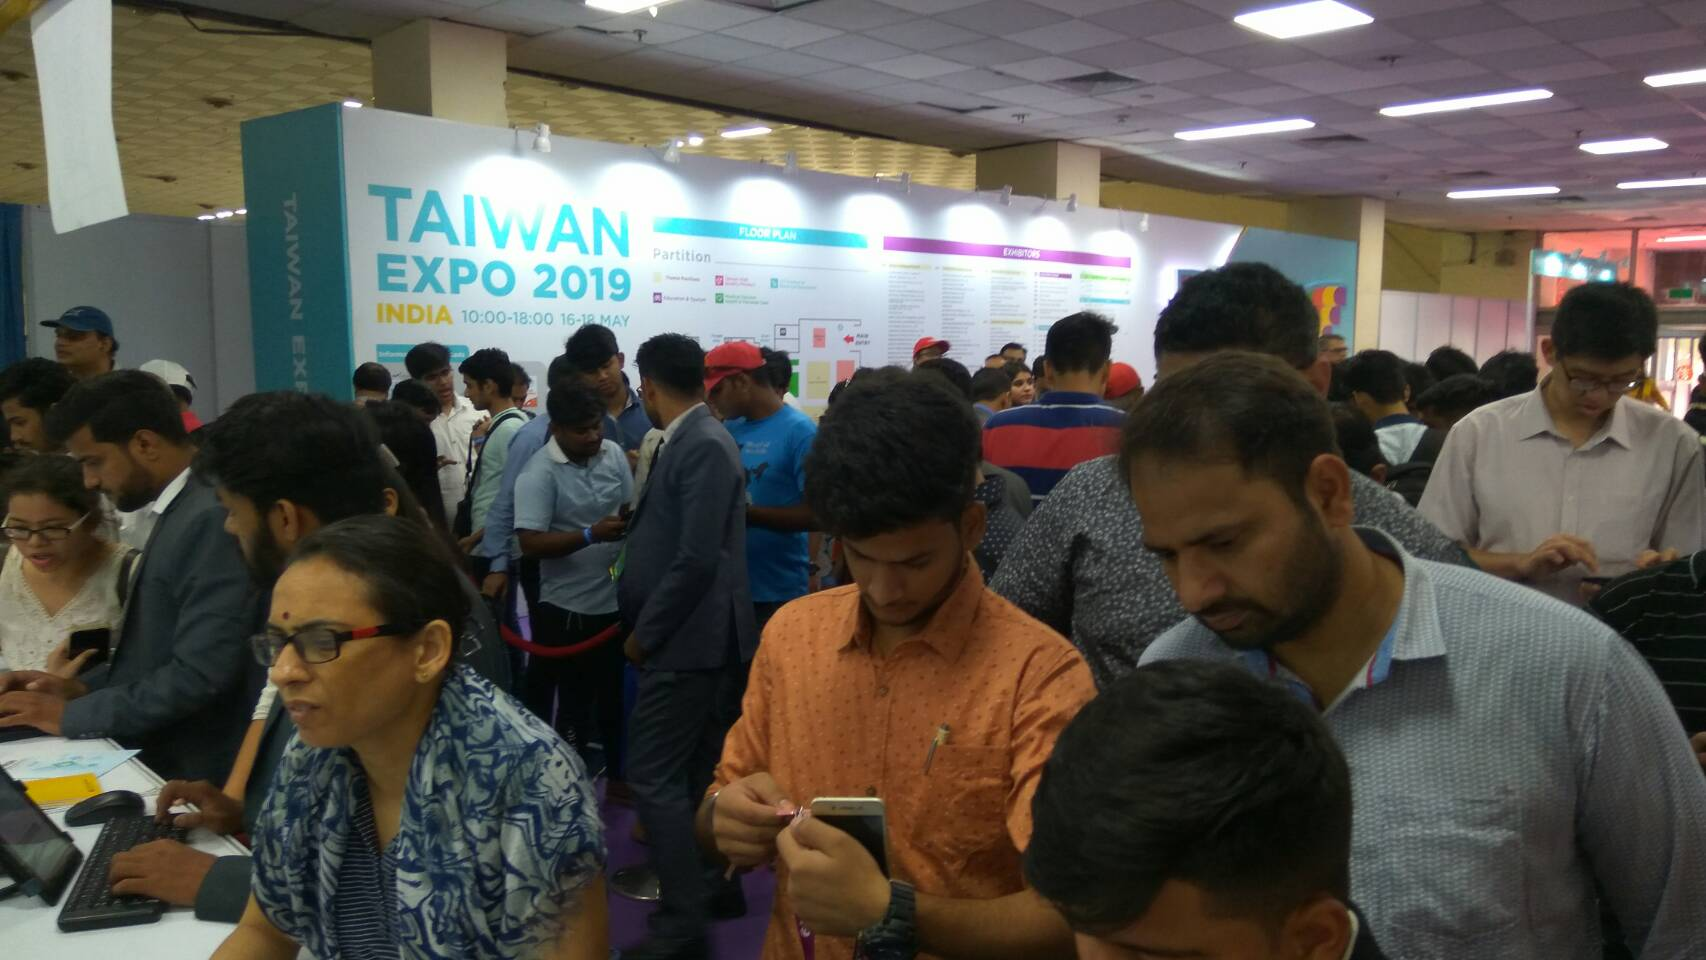 https://storage.googleapis.com/www.taiwantradeshow.com.tw/activity-photo/202004/T-73925904-name.jpg